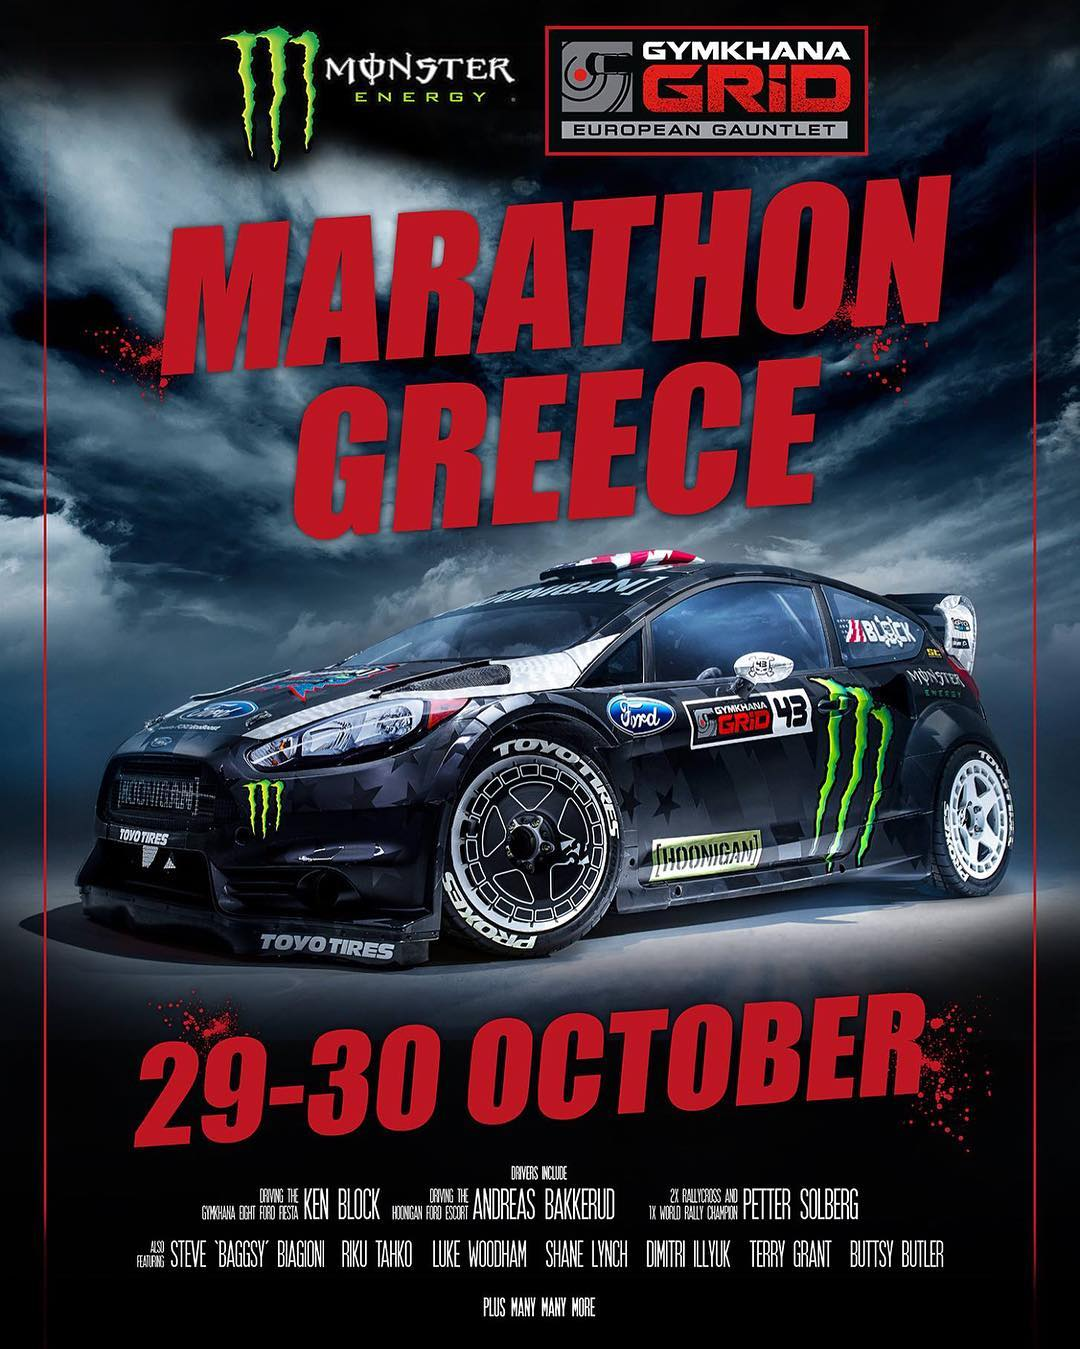 The @GymkhanaGrid European Gauntlet Final is upon us: it's all going down in Marathon, Greece!! And it's the best GRID driver lineup I've seen yet: my Hoonigan Racing teammate @AndreasBakkerud will be racing in the RWD class with the Gymkhana Escort,...